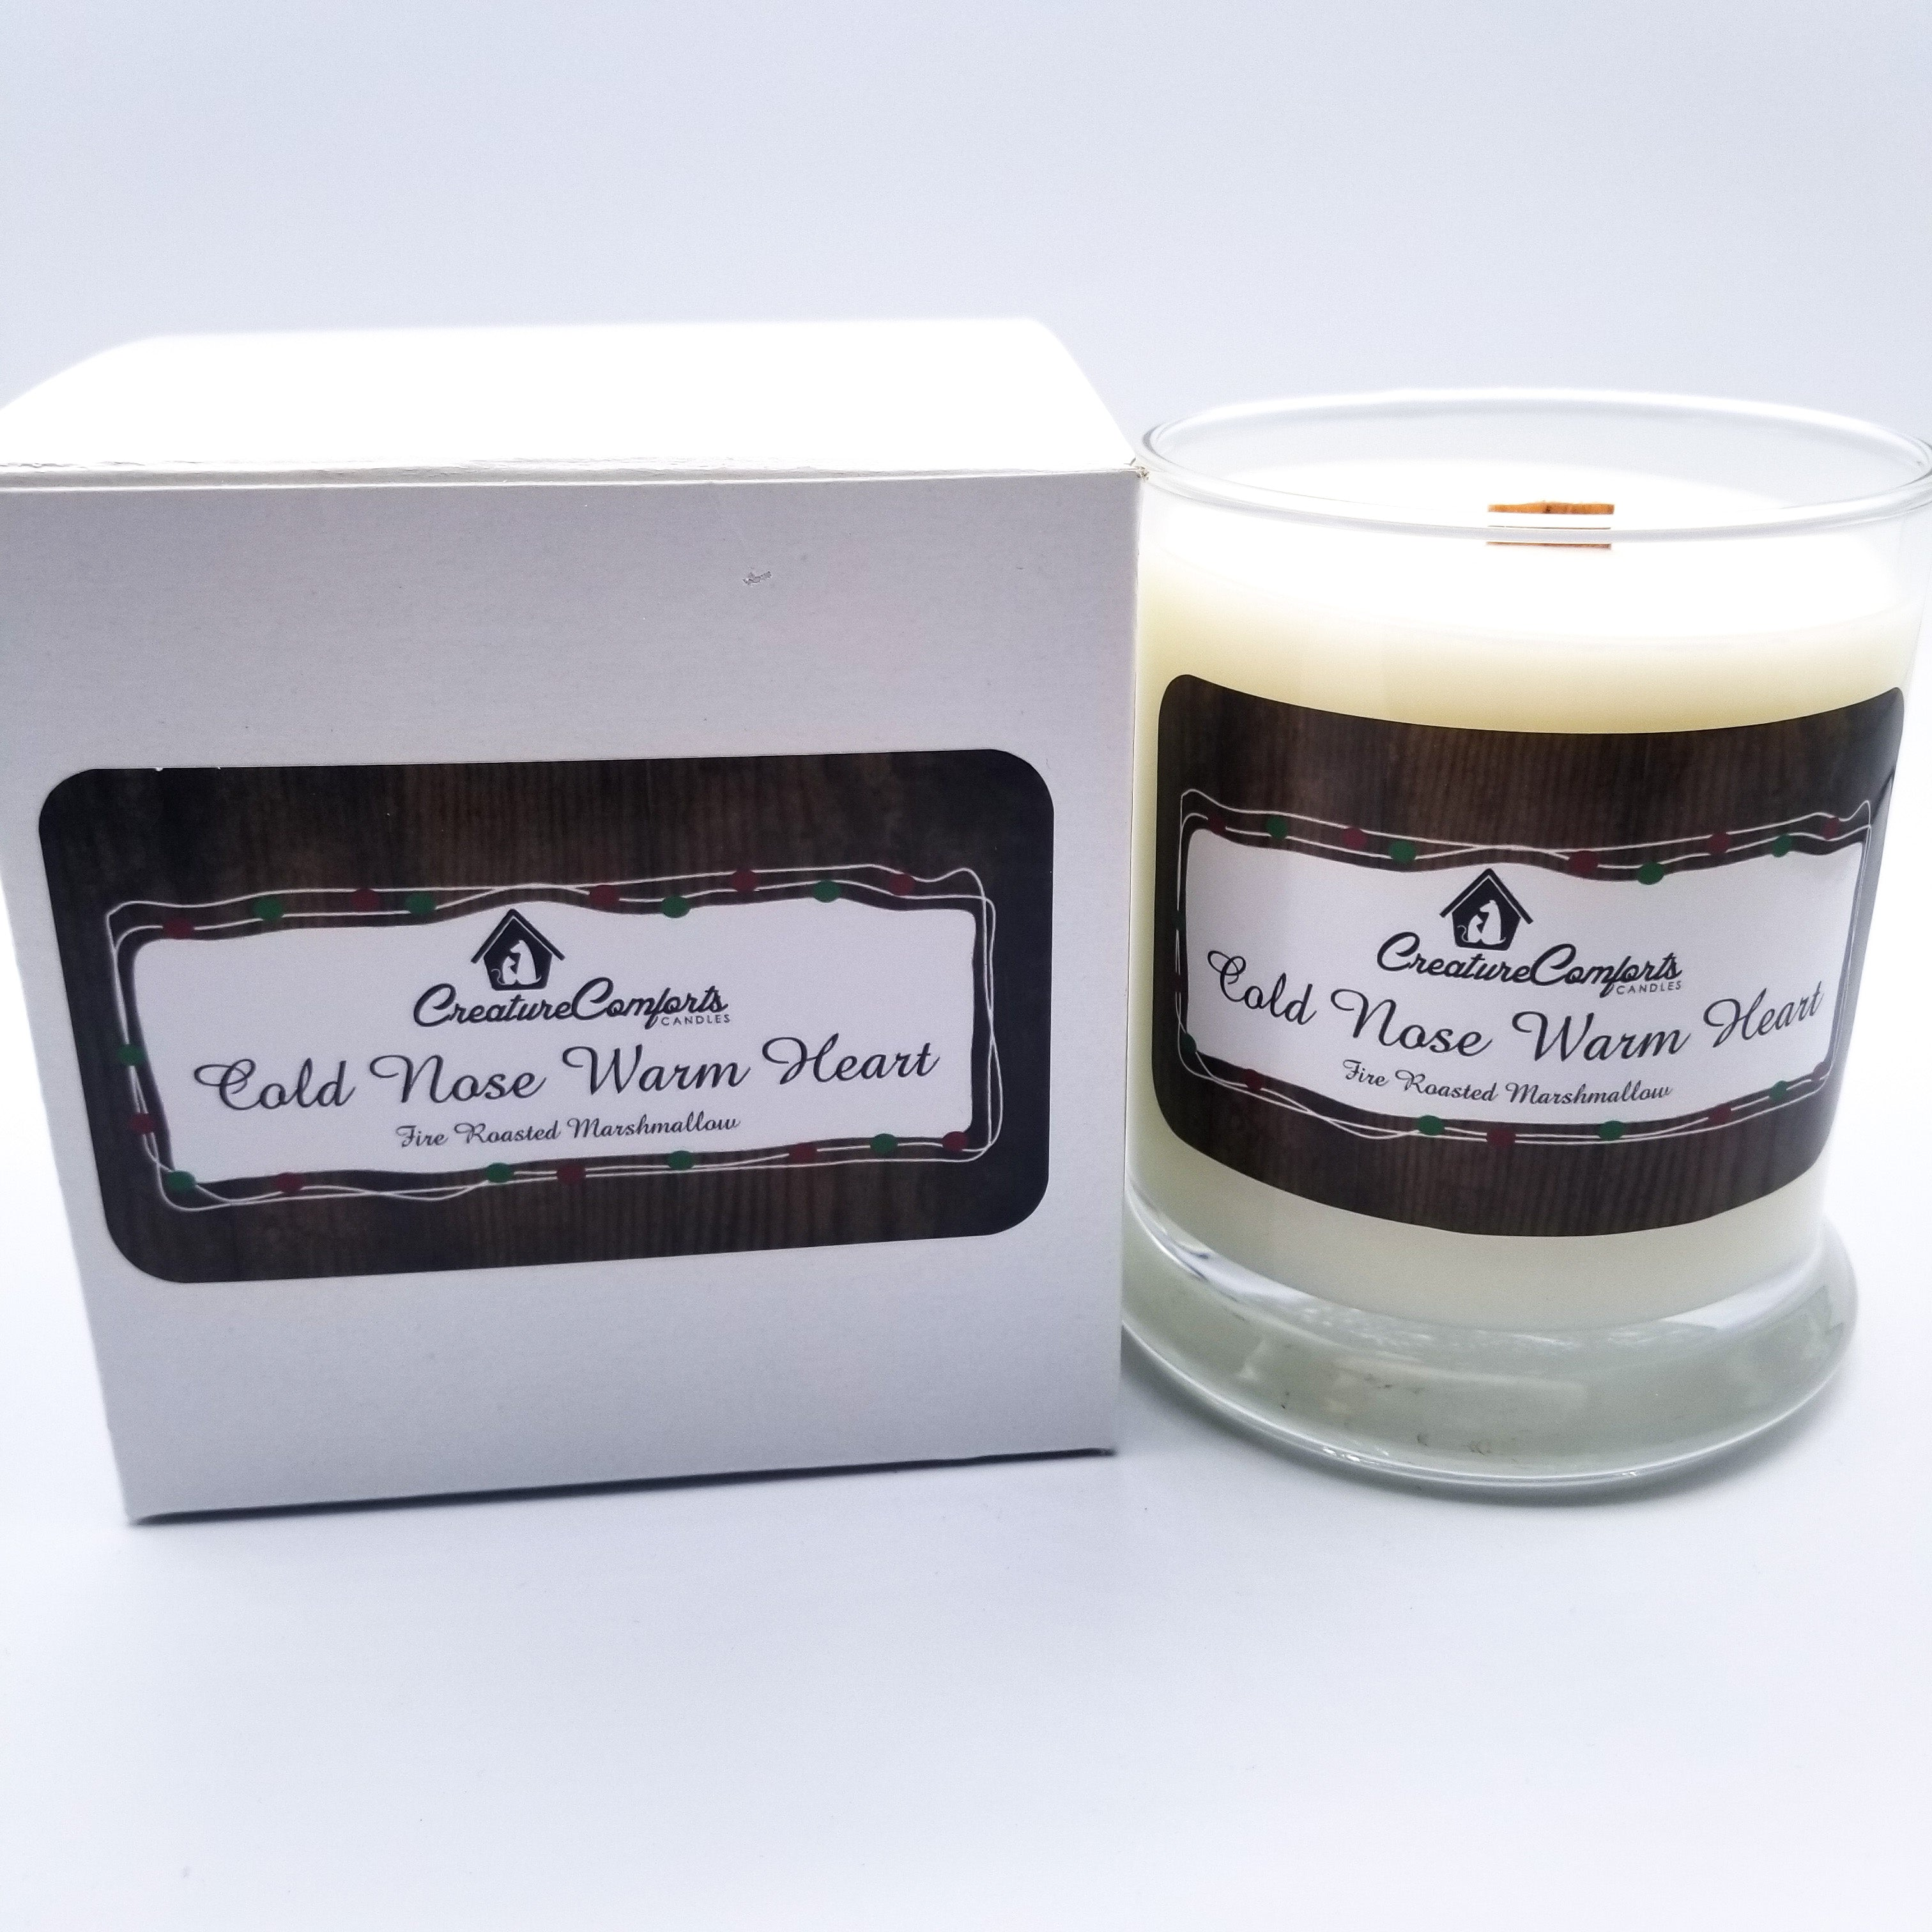 Cold Nose Warm Heart Candle by Creature Comforts